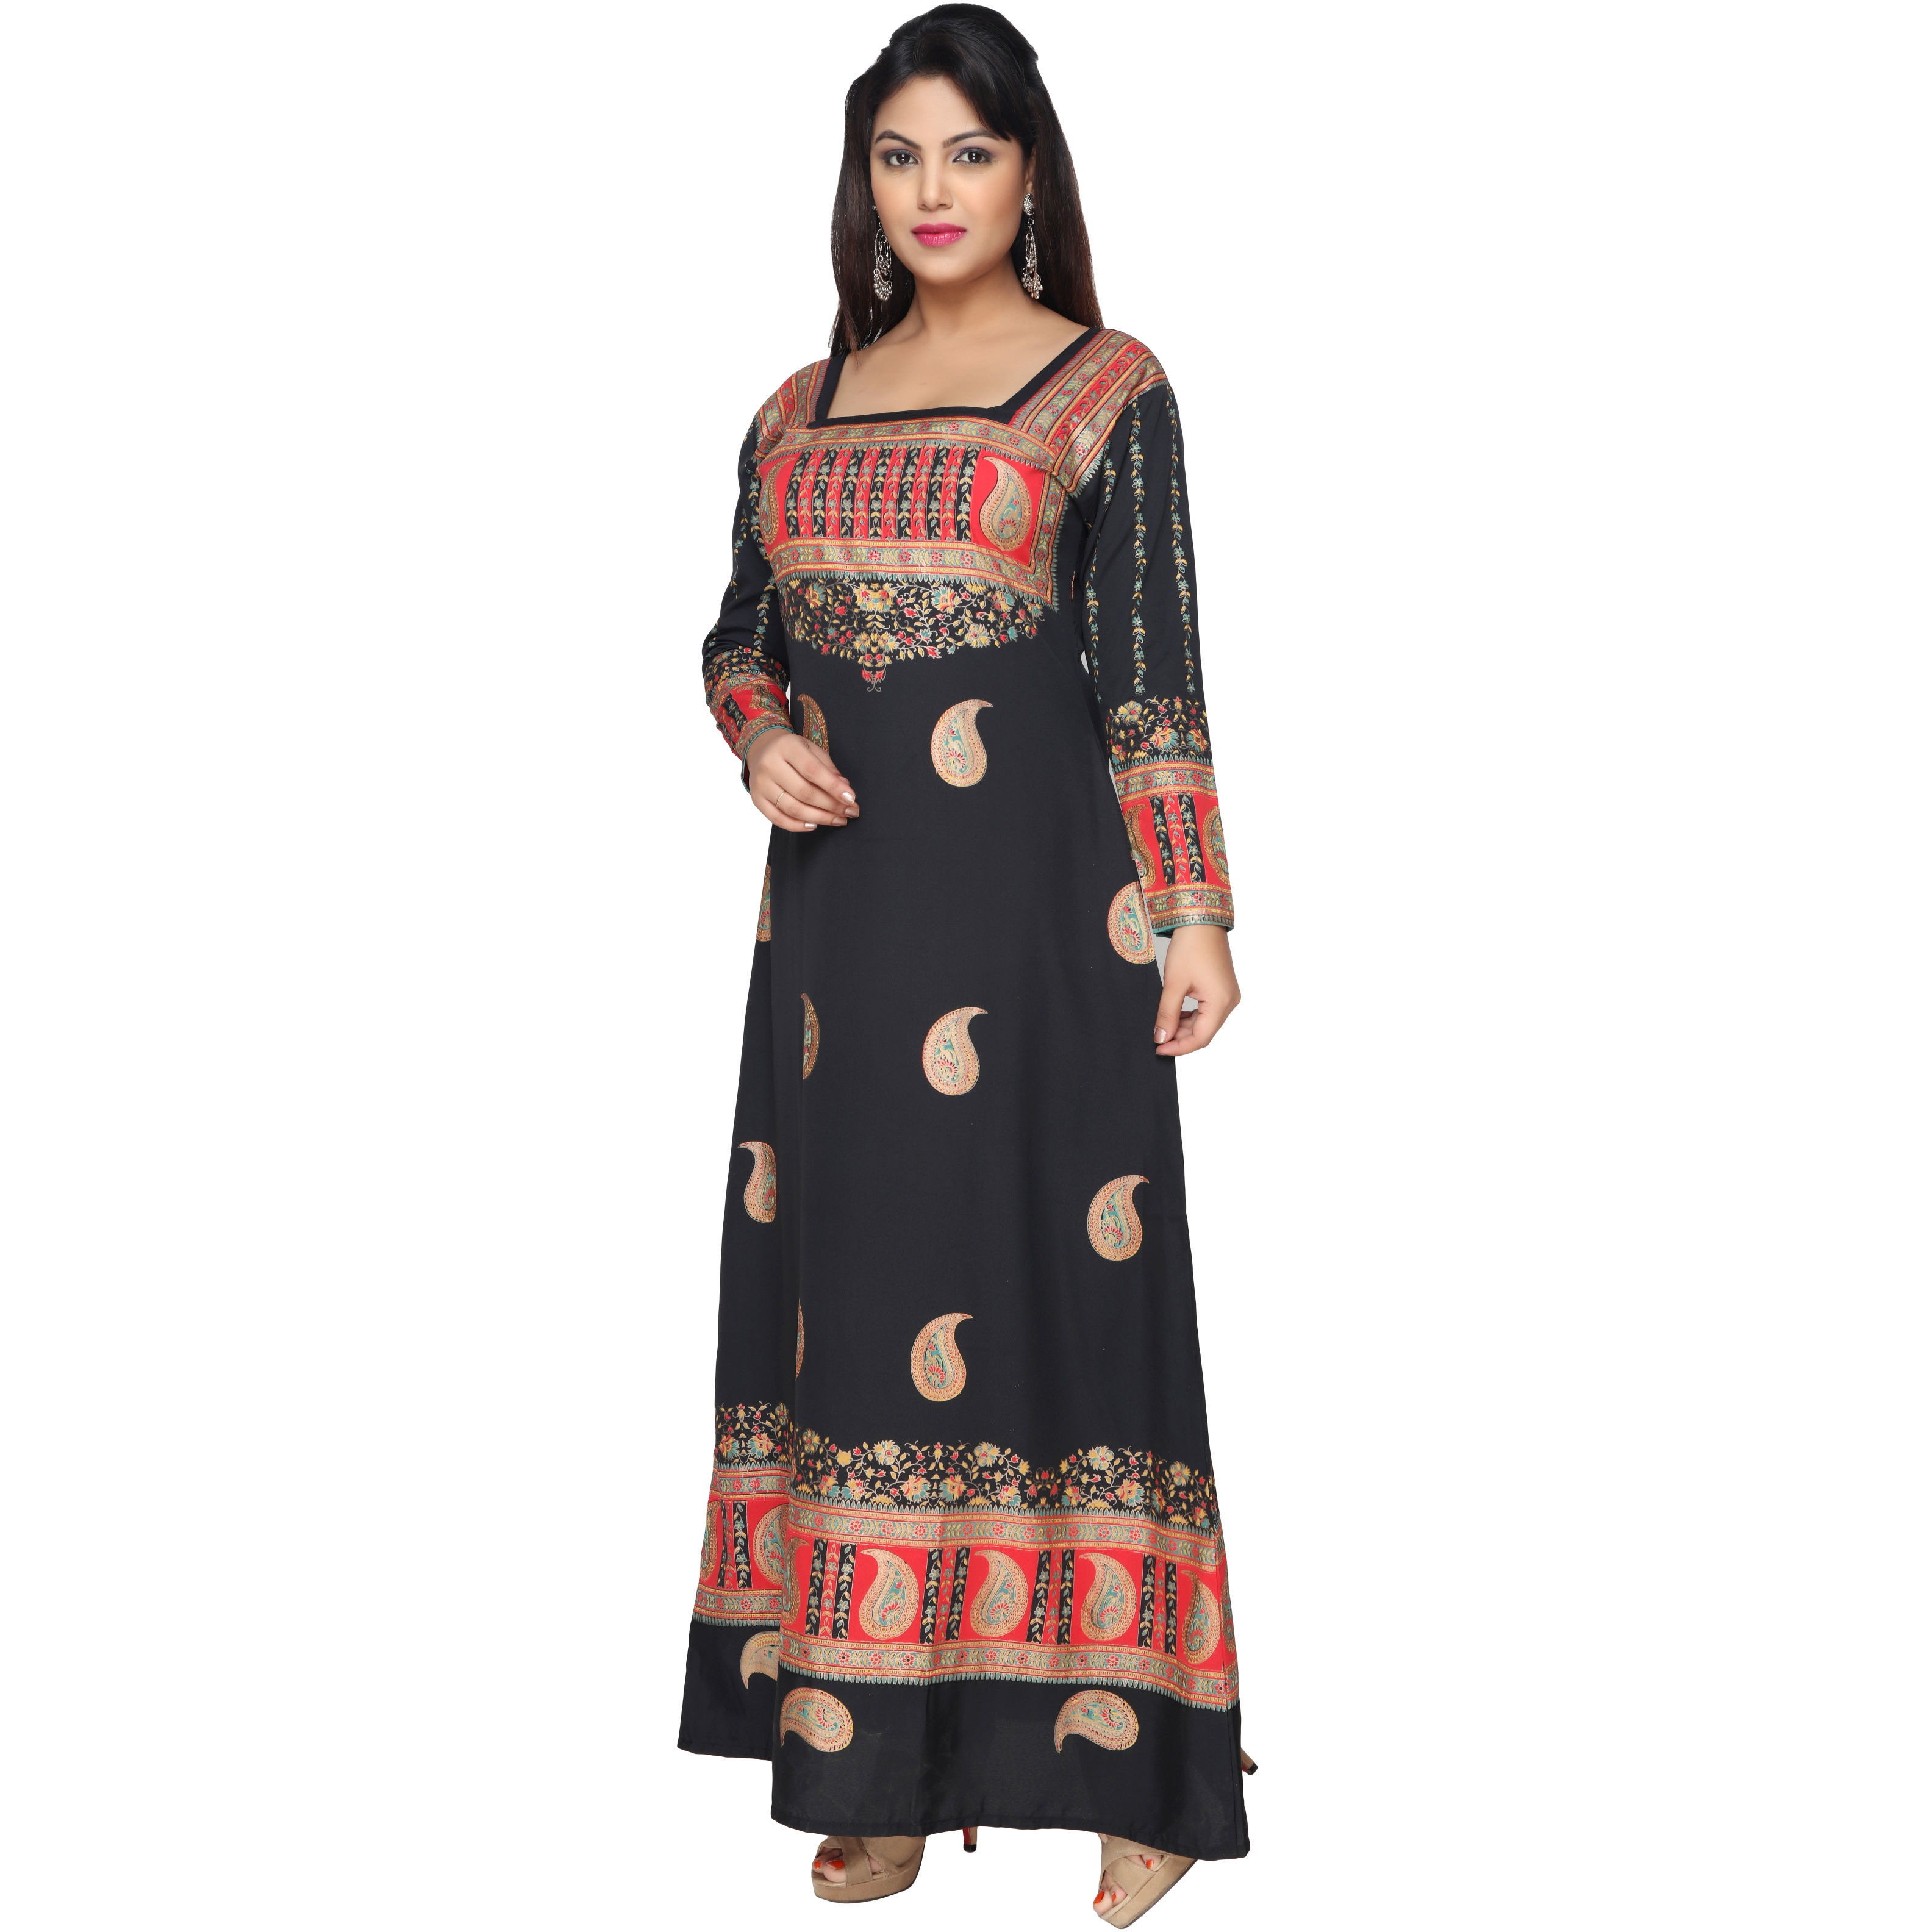 TrendyFashionMall Gold Print Kaftans Maxi Dresses with design in Front and Back (Color:TFMKFT01011-BLACK, Size:52 - 5X-LARGE)